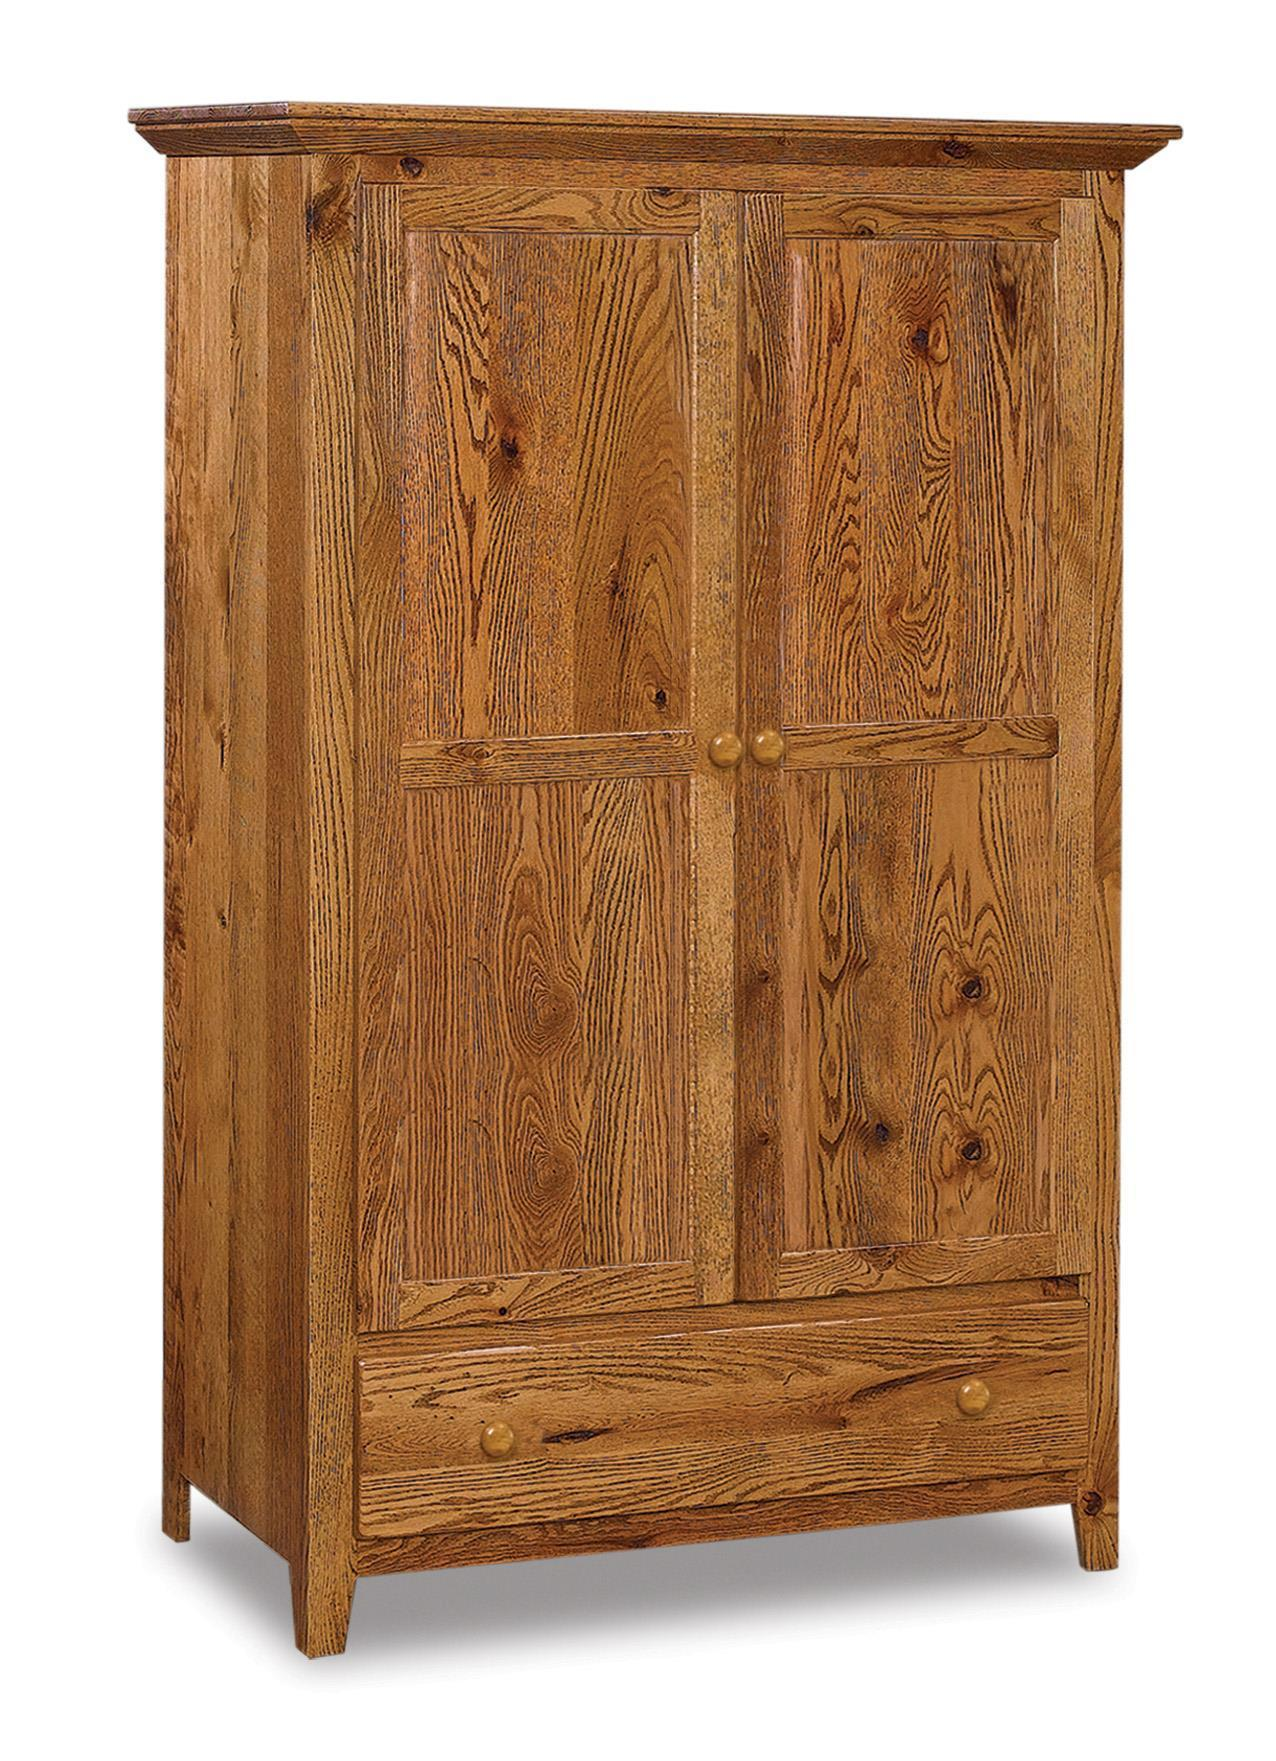 Shaker Style Amish Armoire from DutchCrafters Amish Furniture